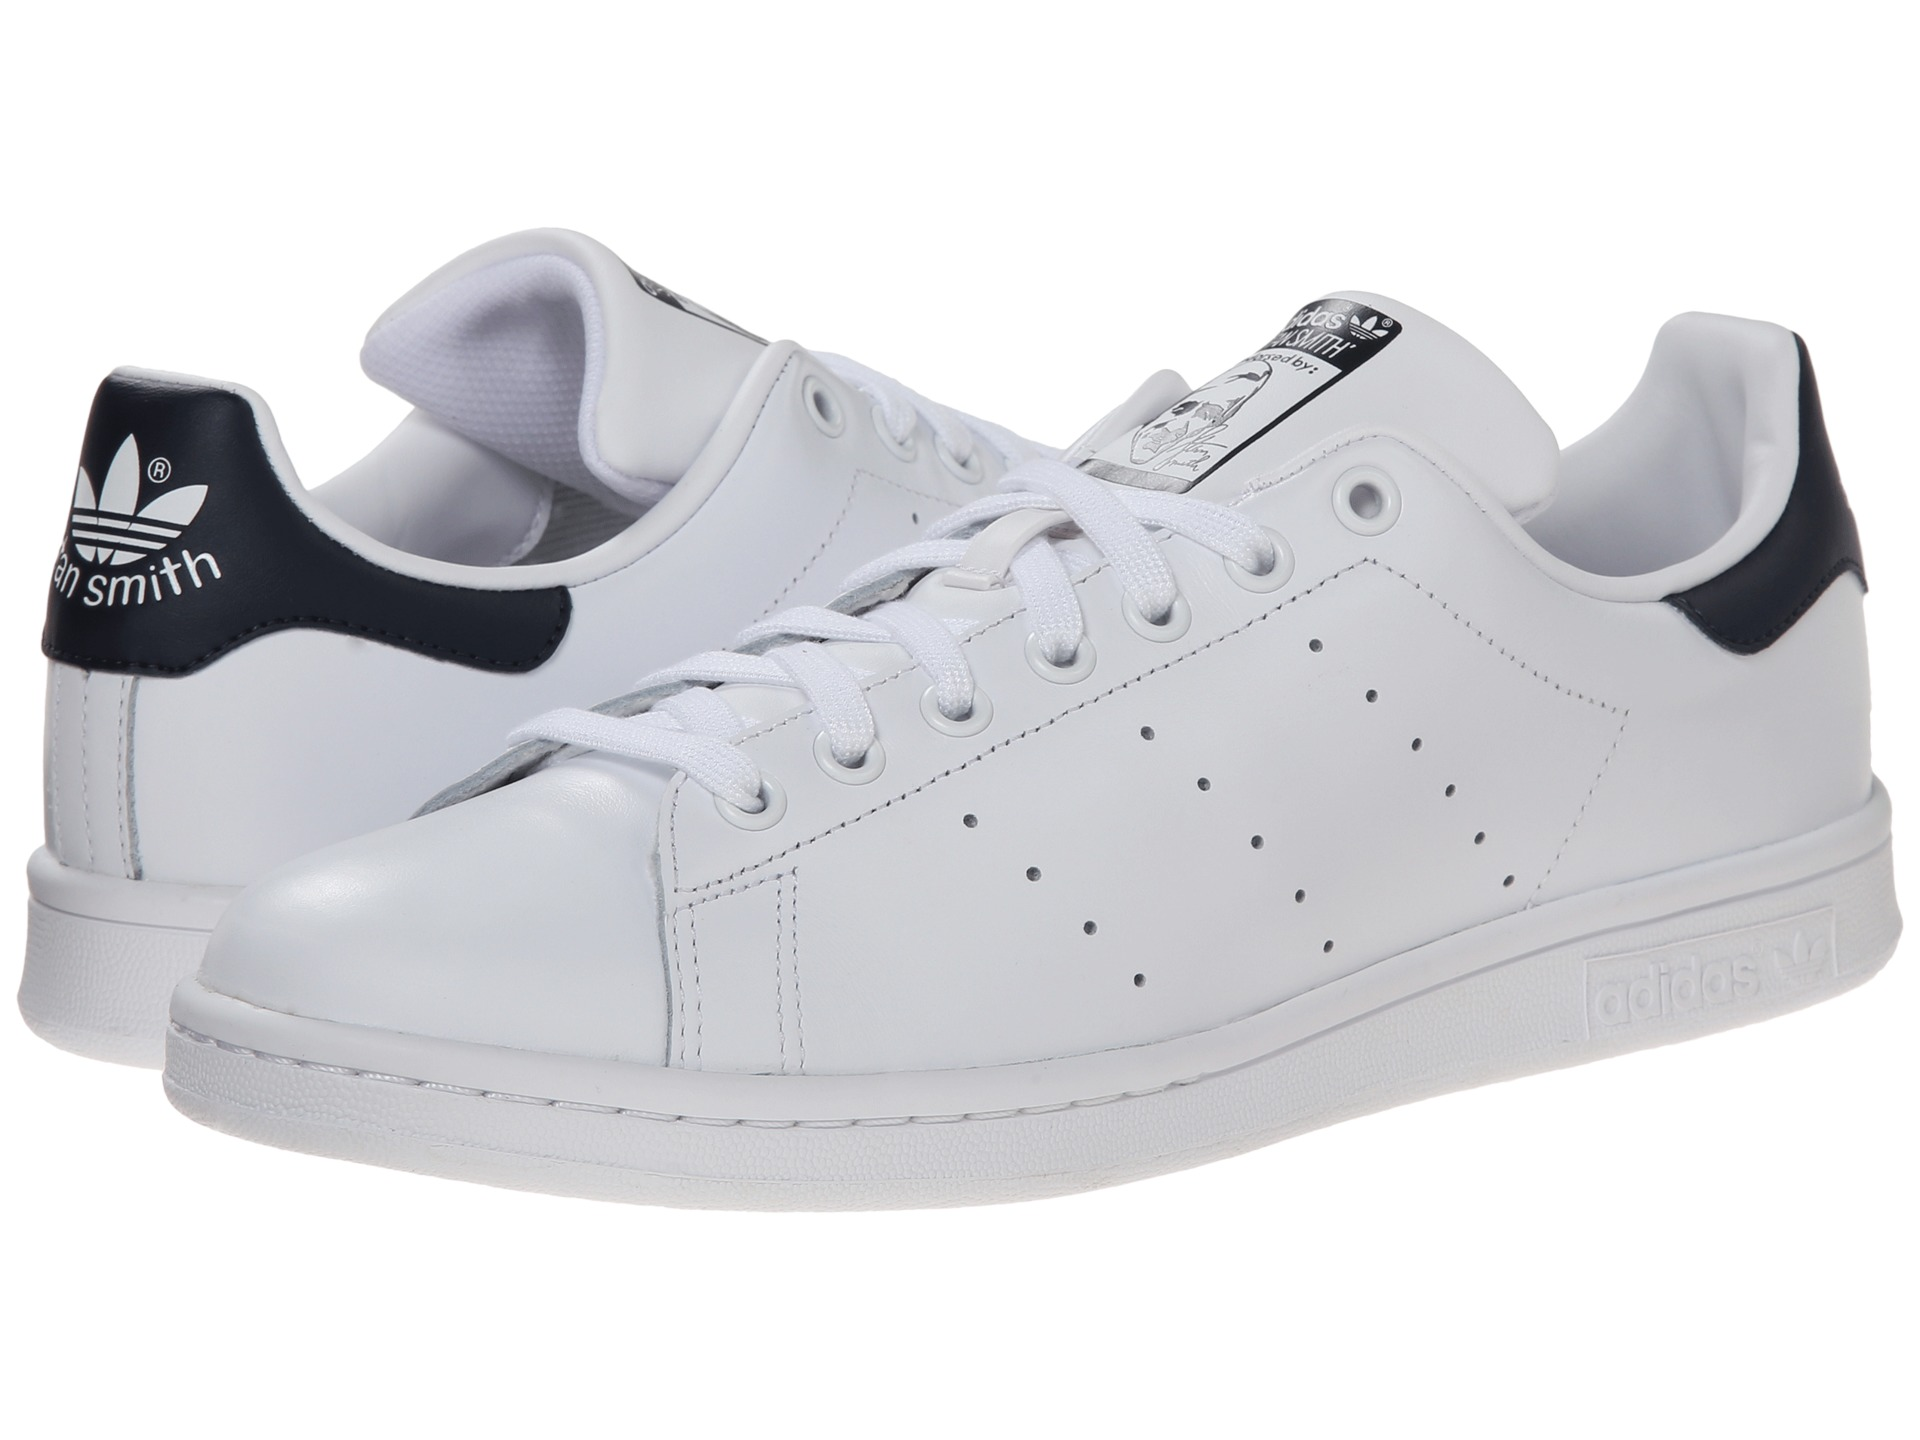 adidas originals stan smith white white navy free shipping both ways. Black Bedroom Furniture Sets. Home Design Ideas